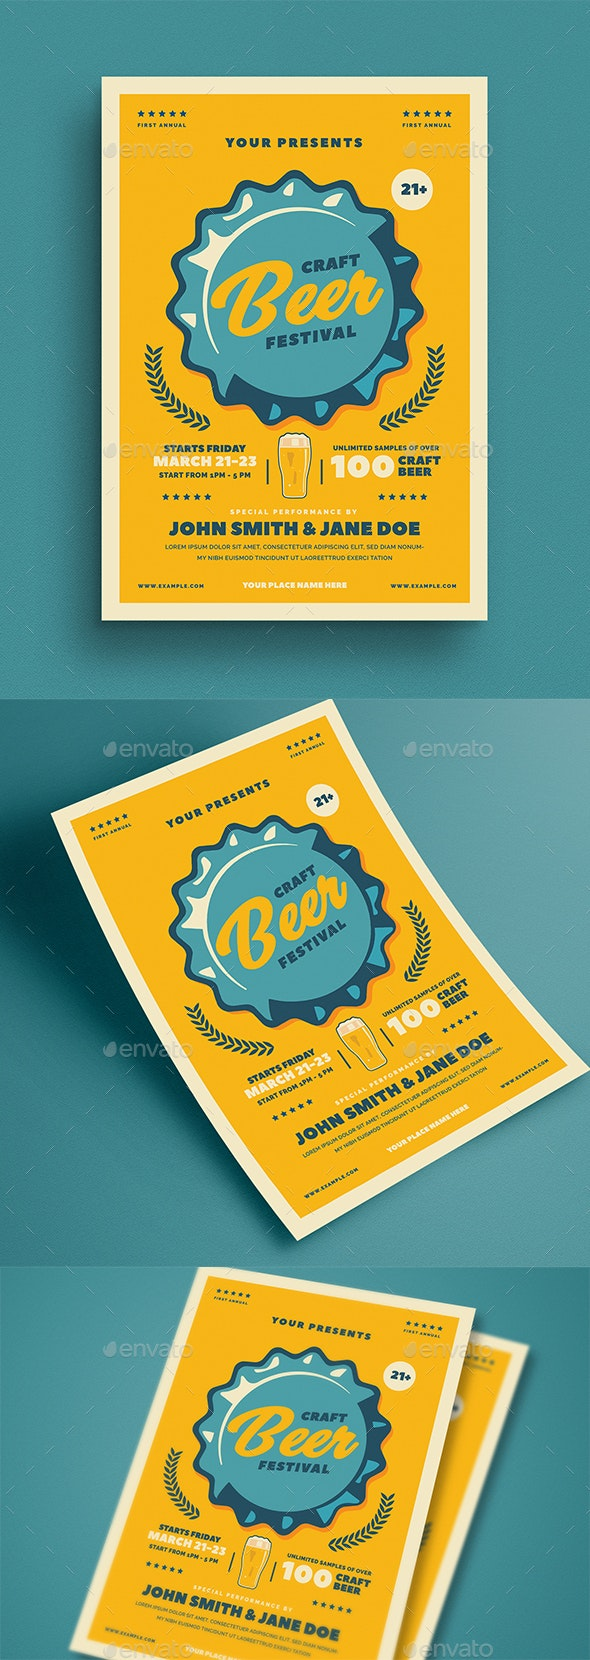 Craft Beer Festival Event Flyer - Flyers Print Templates